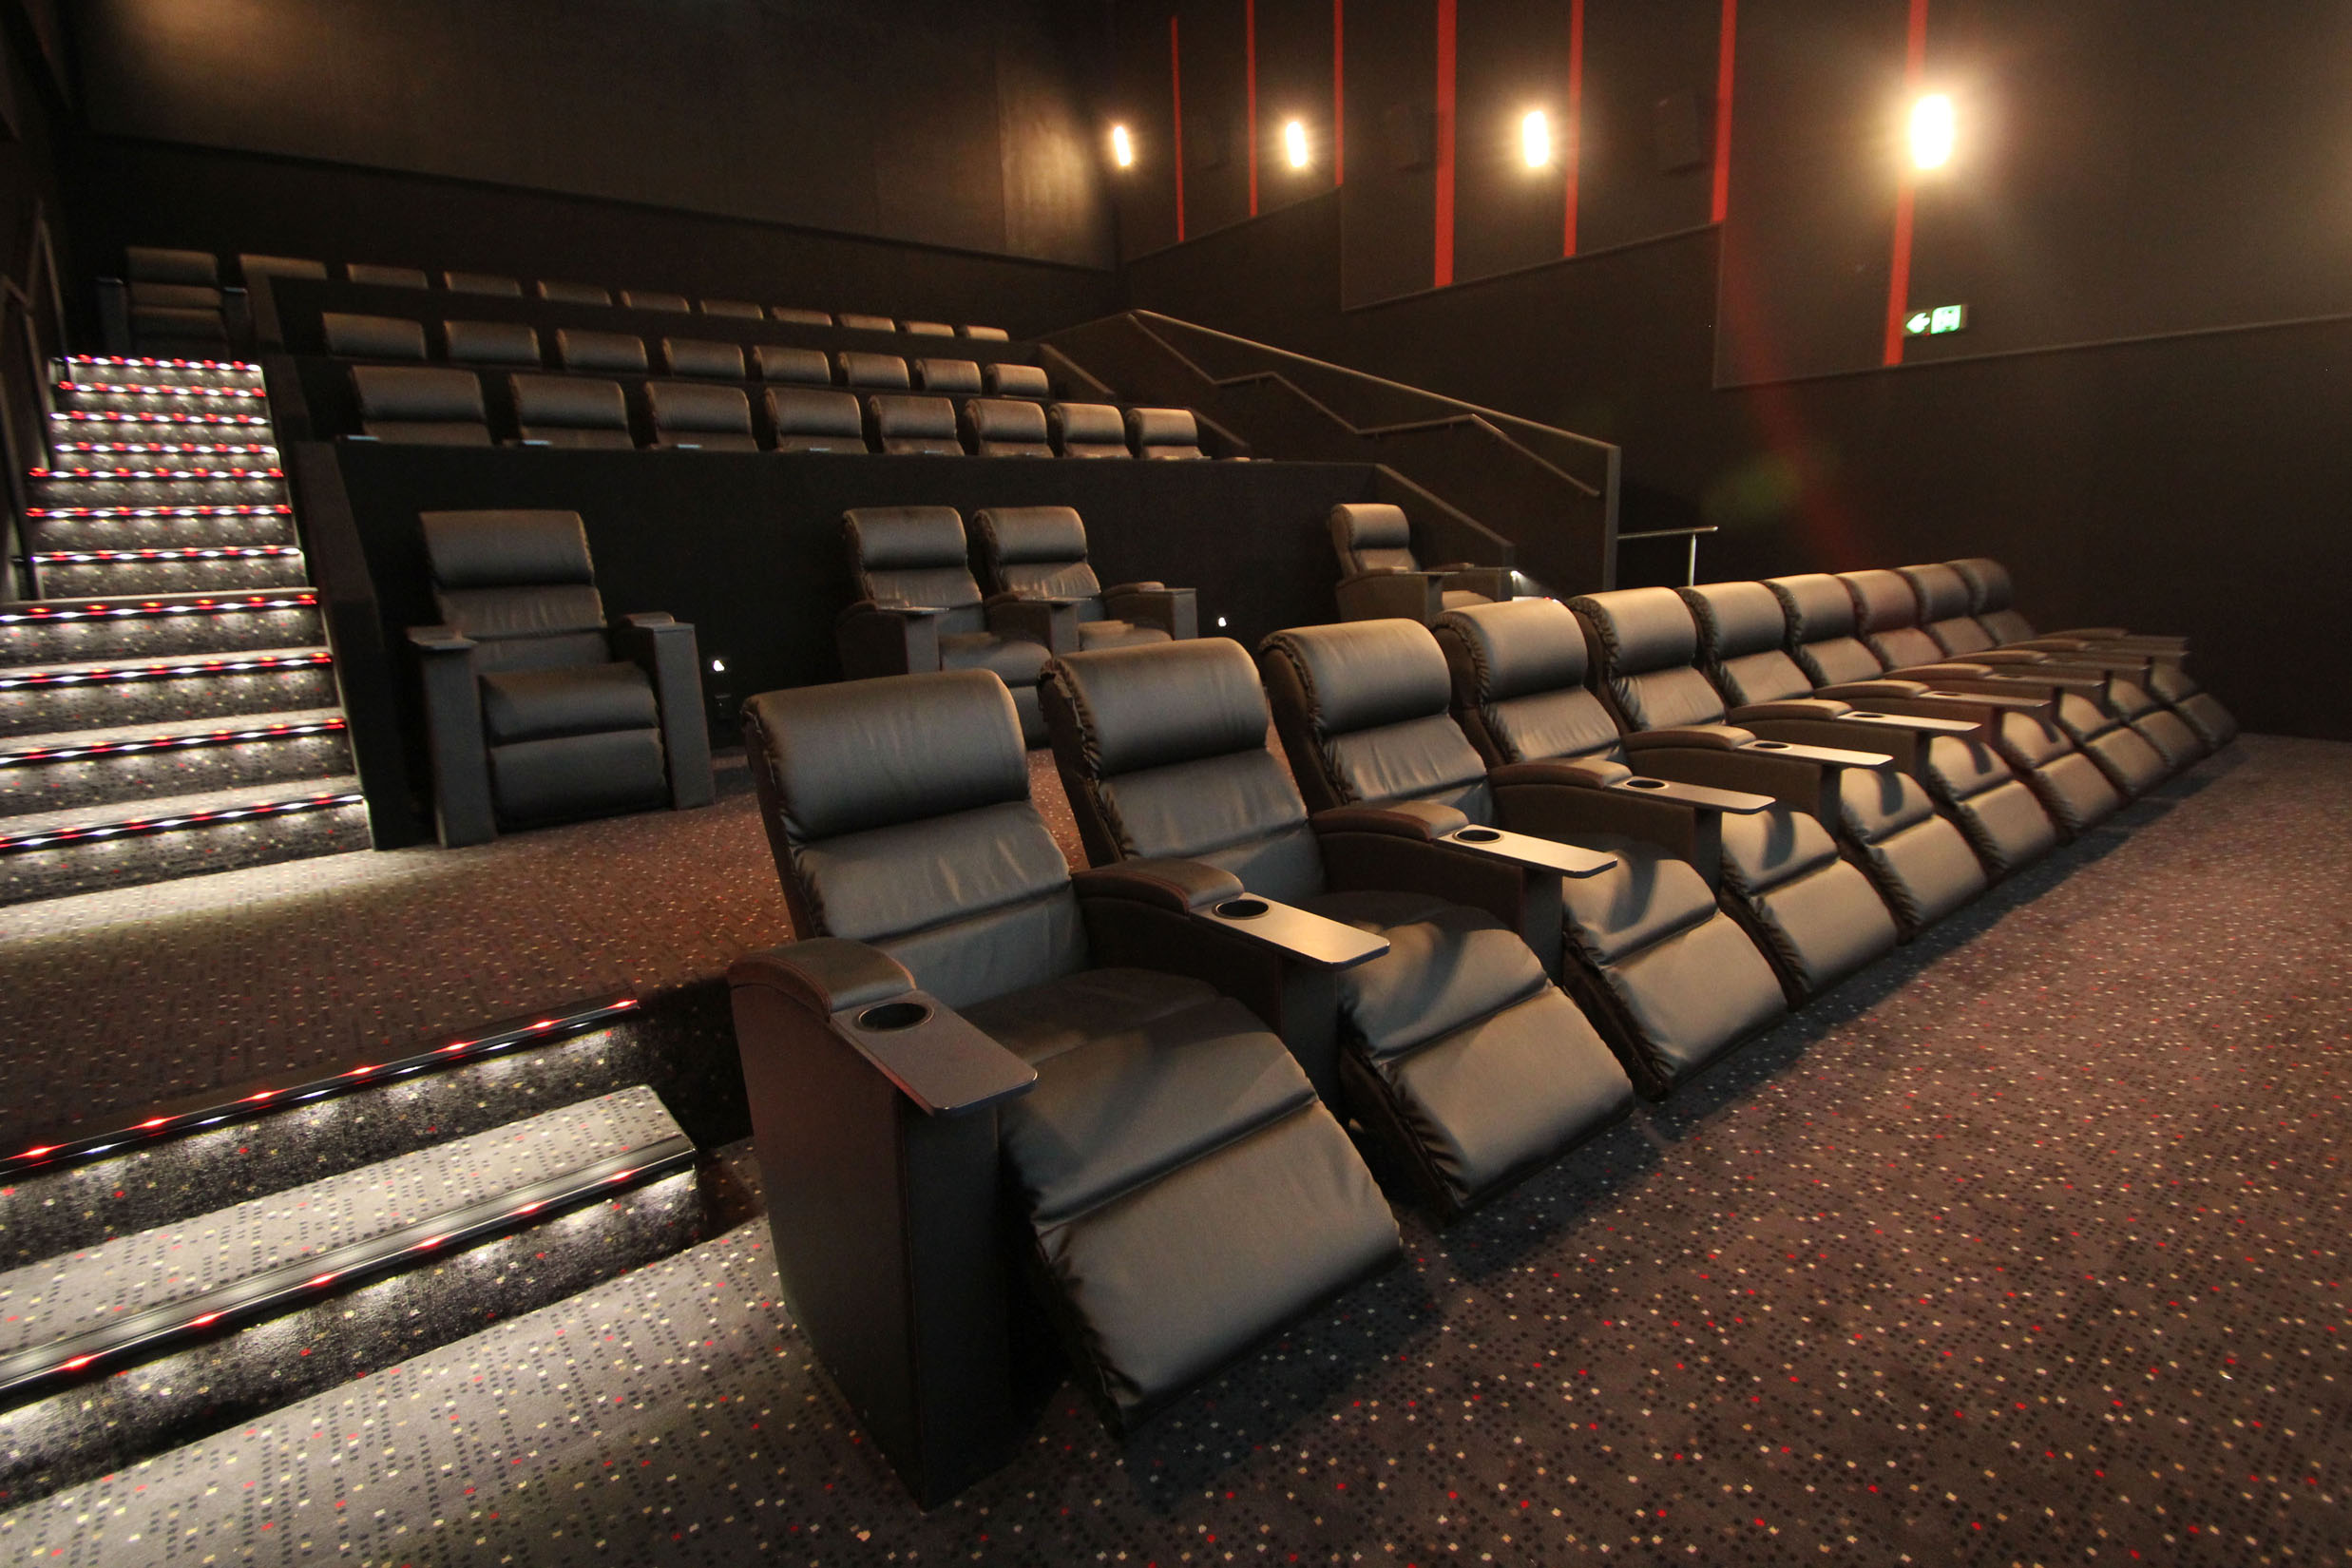 Australia S Best Cinema Experience Comes To Chadstone B Amp T